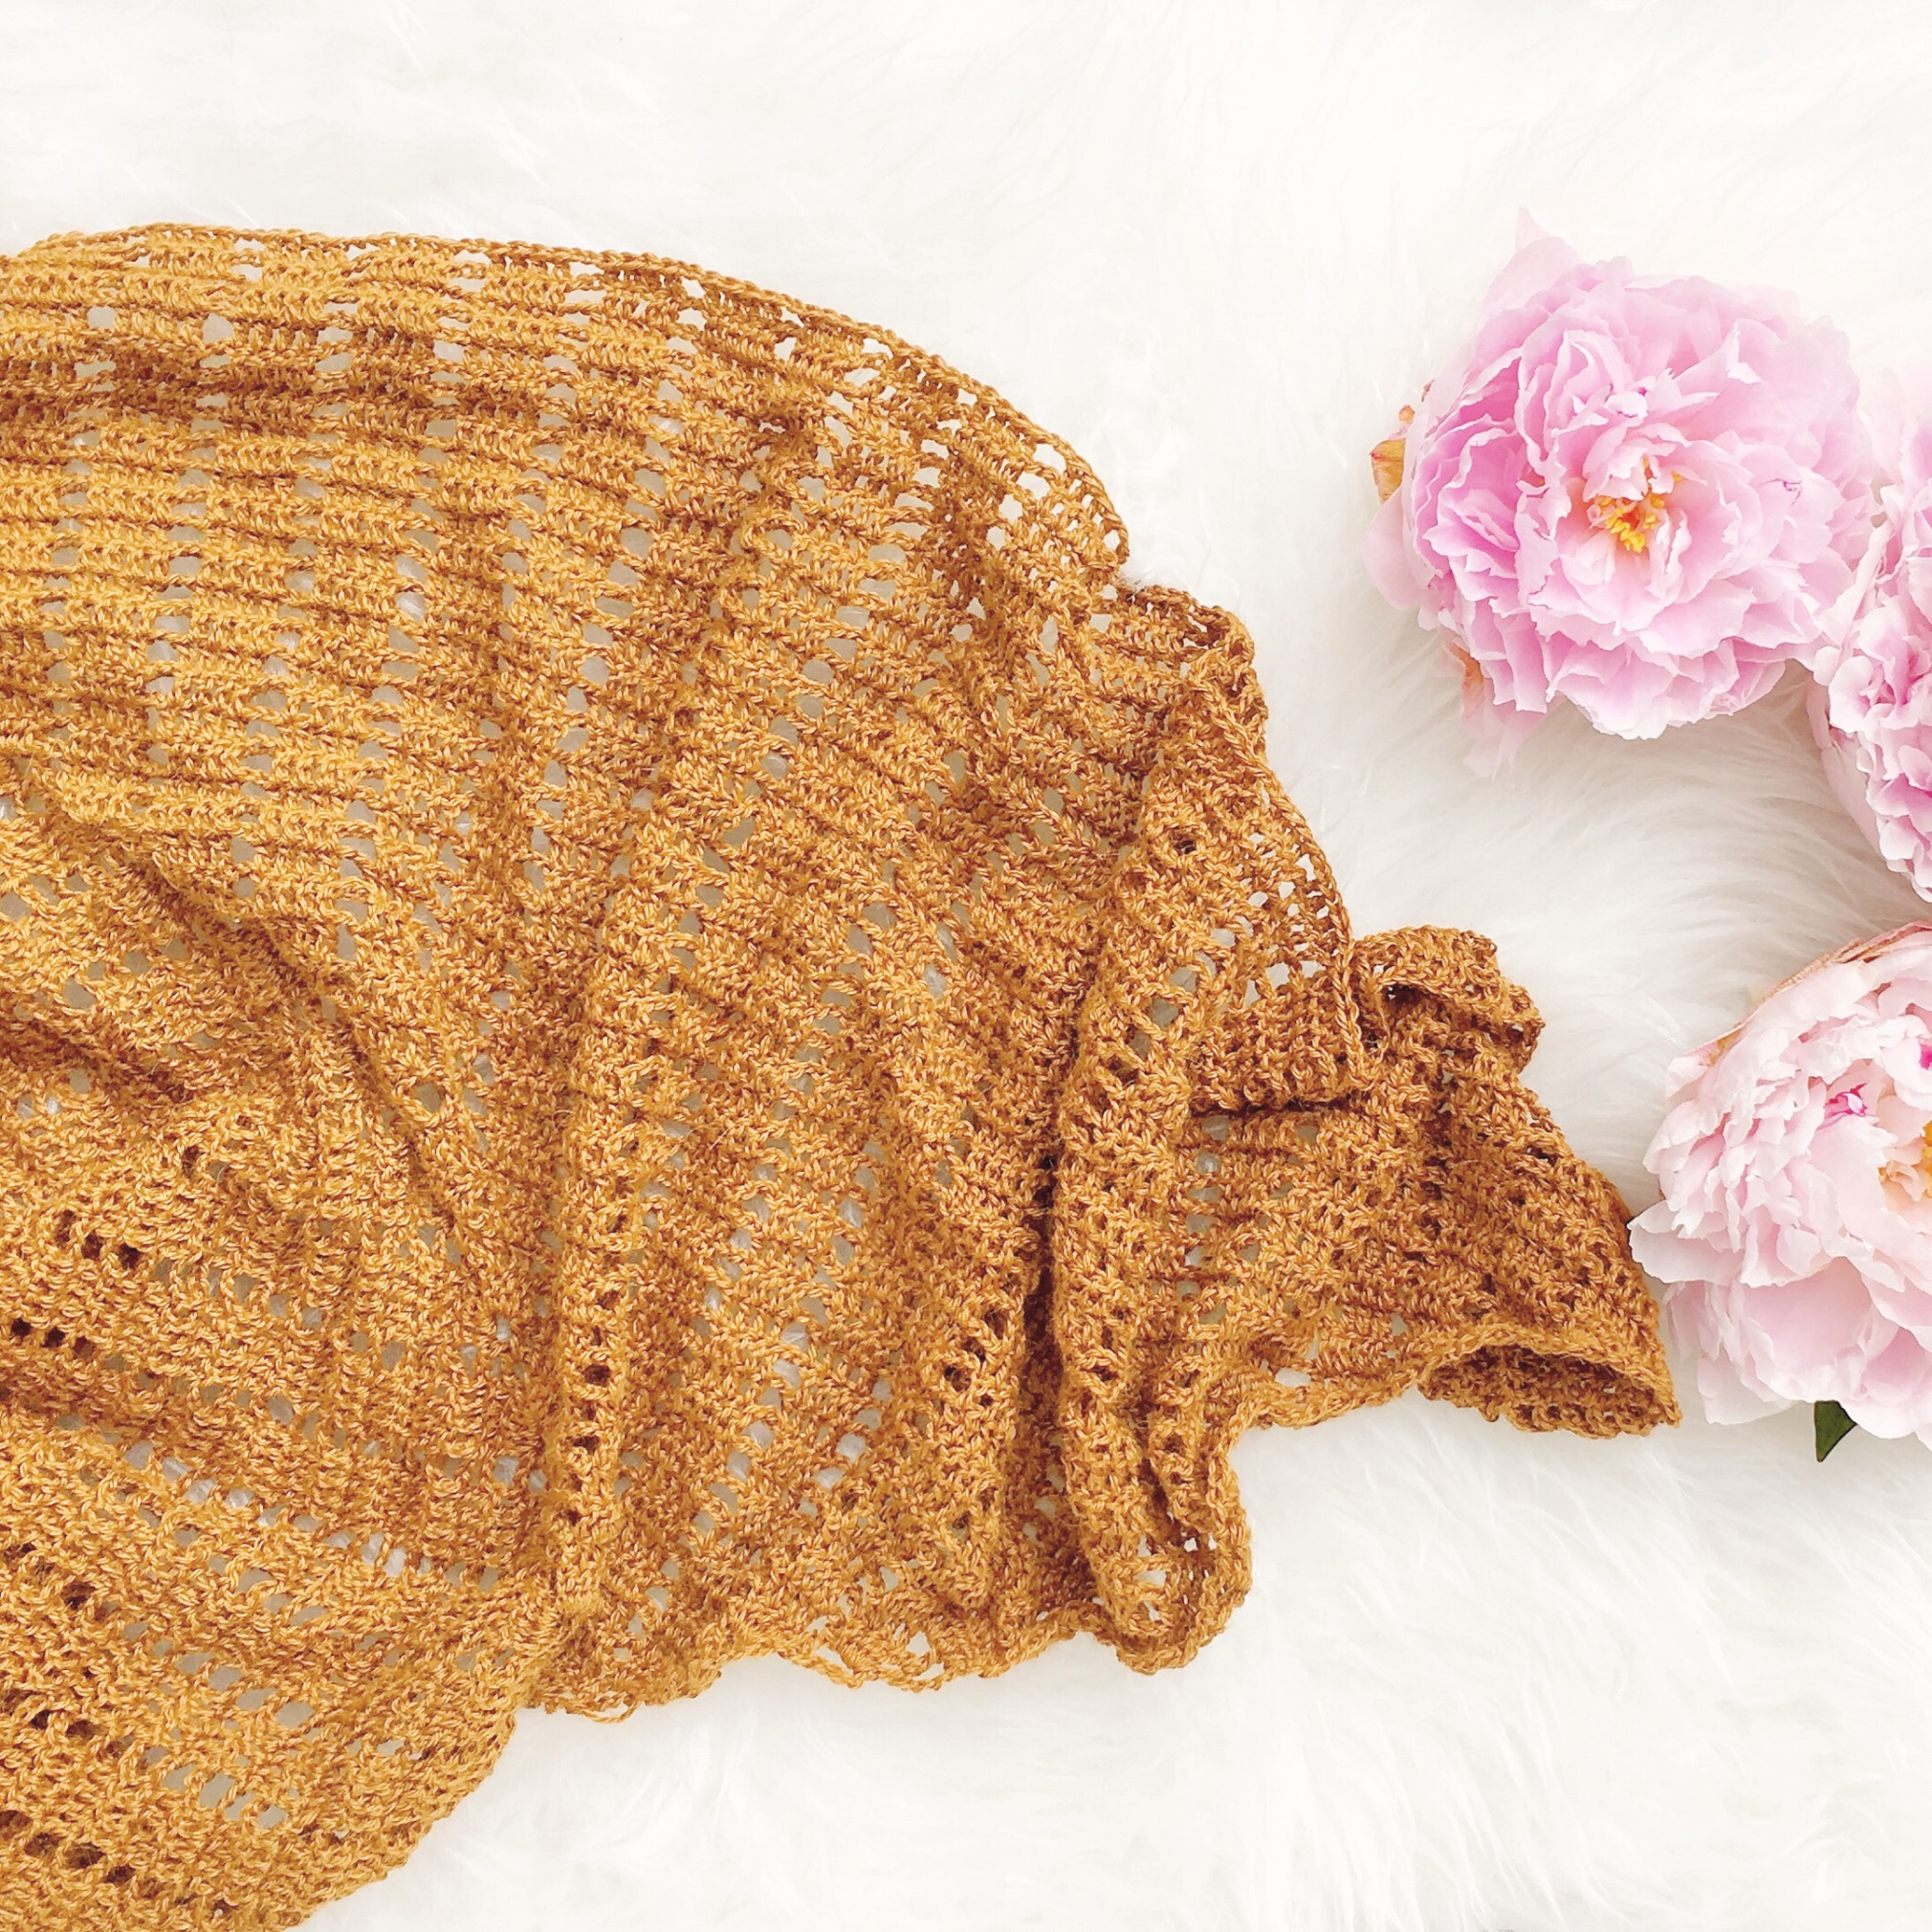 balance - A soothing, meditative crochet project is always welcome and the balance shawl pattern is available as a single pattern or part of the ebook Hanging Rock Designs vol. 1.